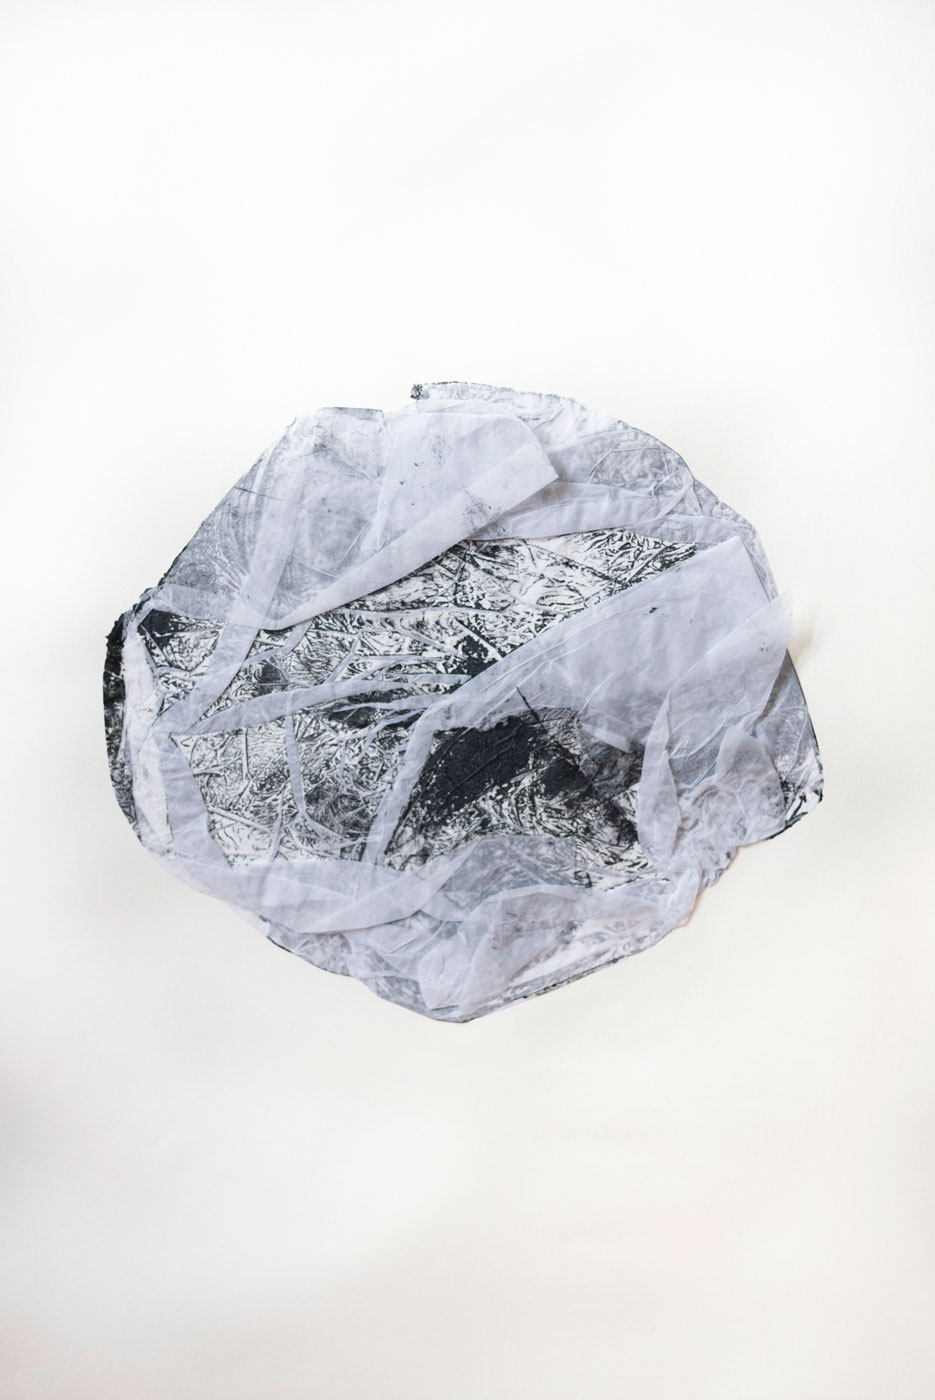 untitled paper works